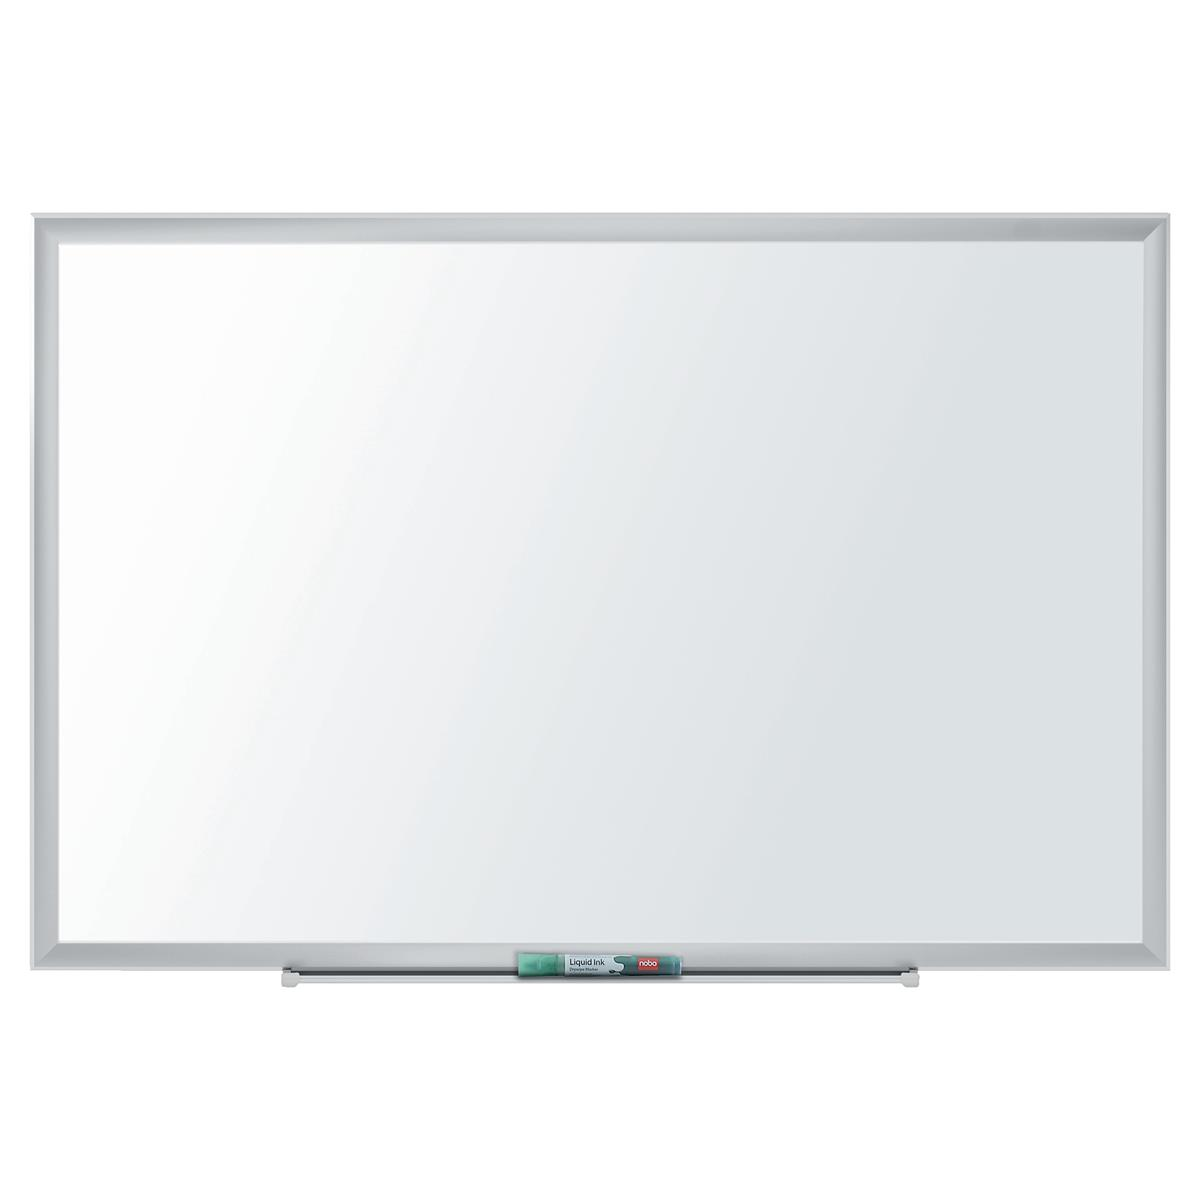 Nobo Nano Clean Steel Whiteboard Magnetic Exclusive Nano Clean Surface W1800xH900mm White Ref 1905170